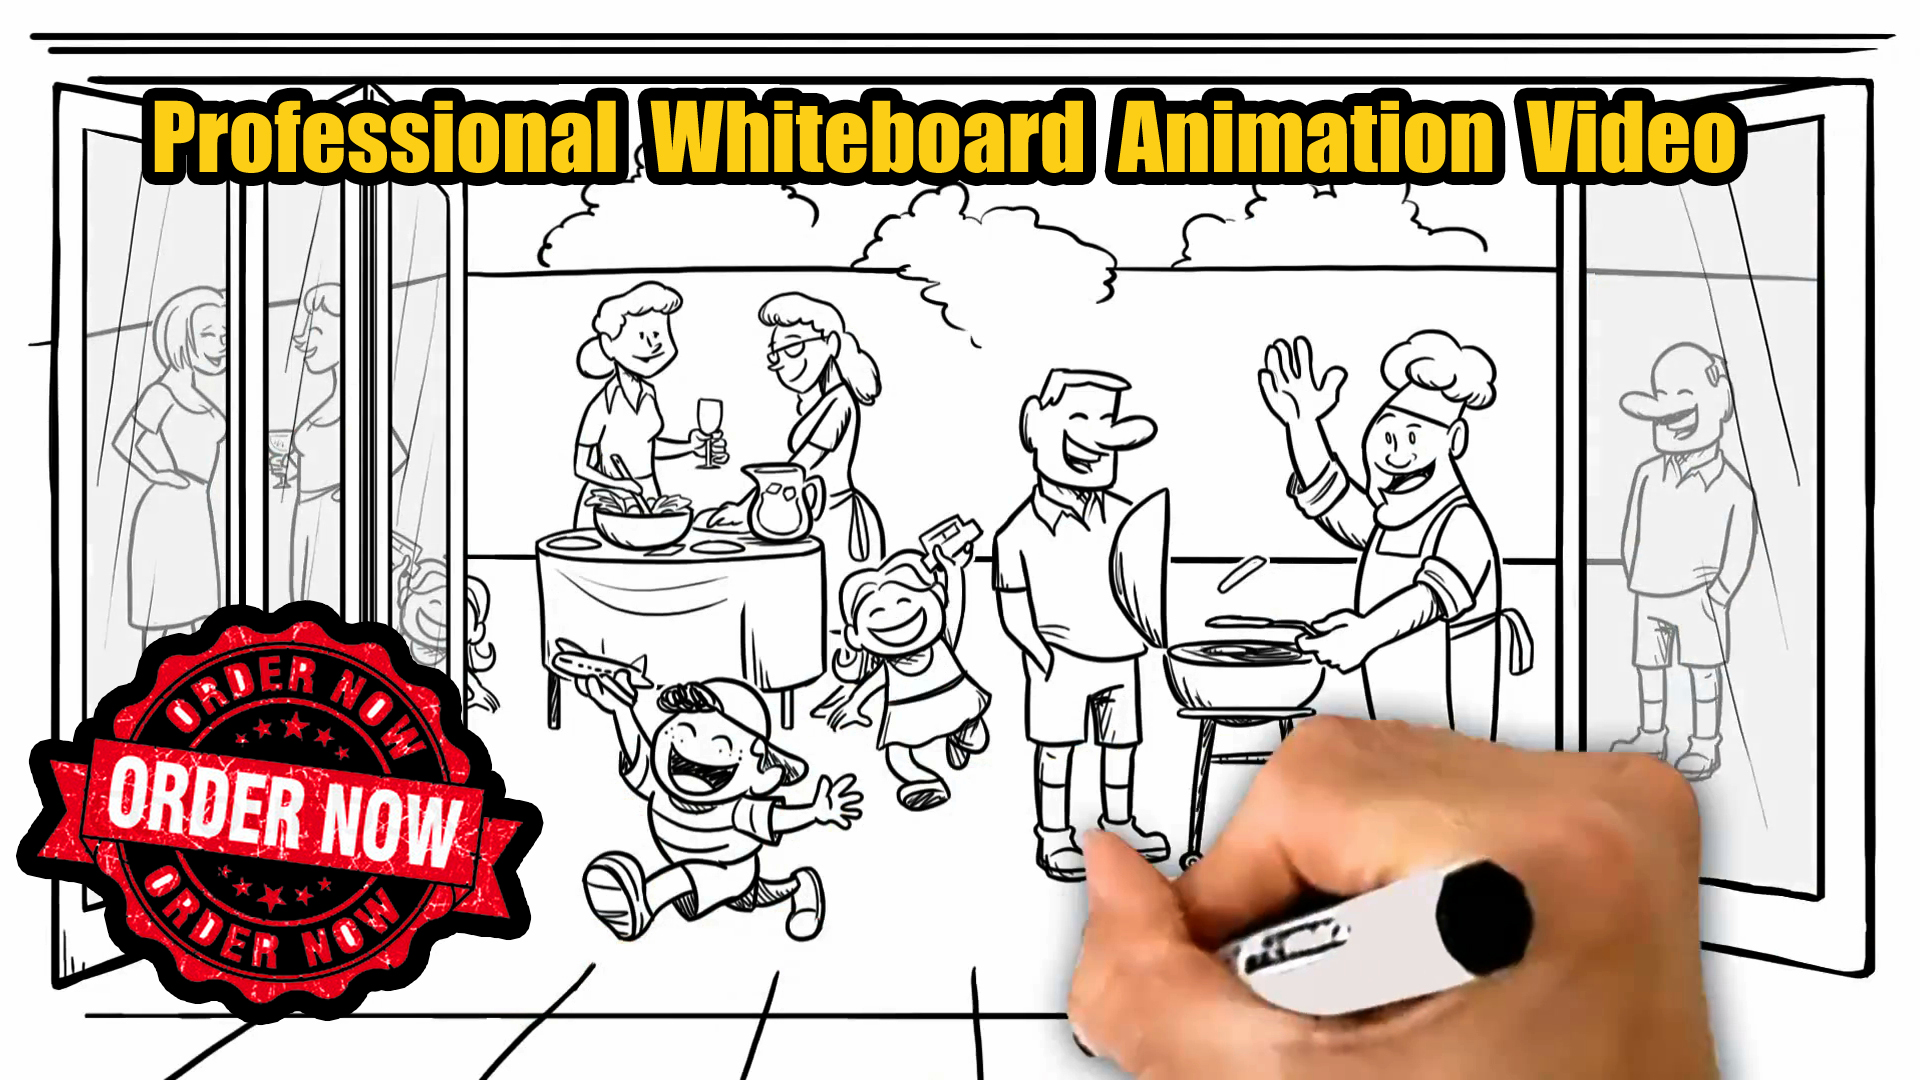 Get a Stunning and Eye-Catching Whiteboard Animation Video for your Business